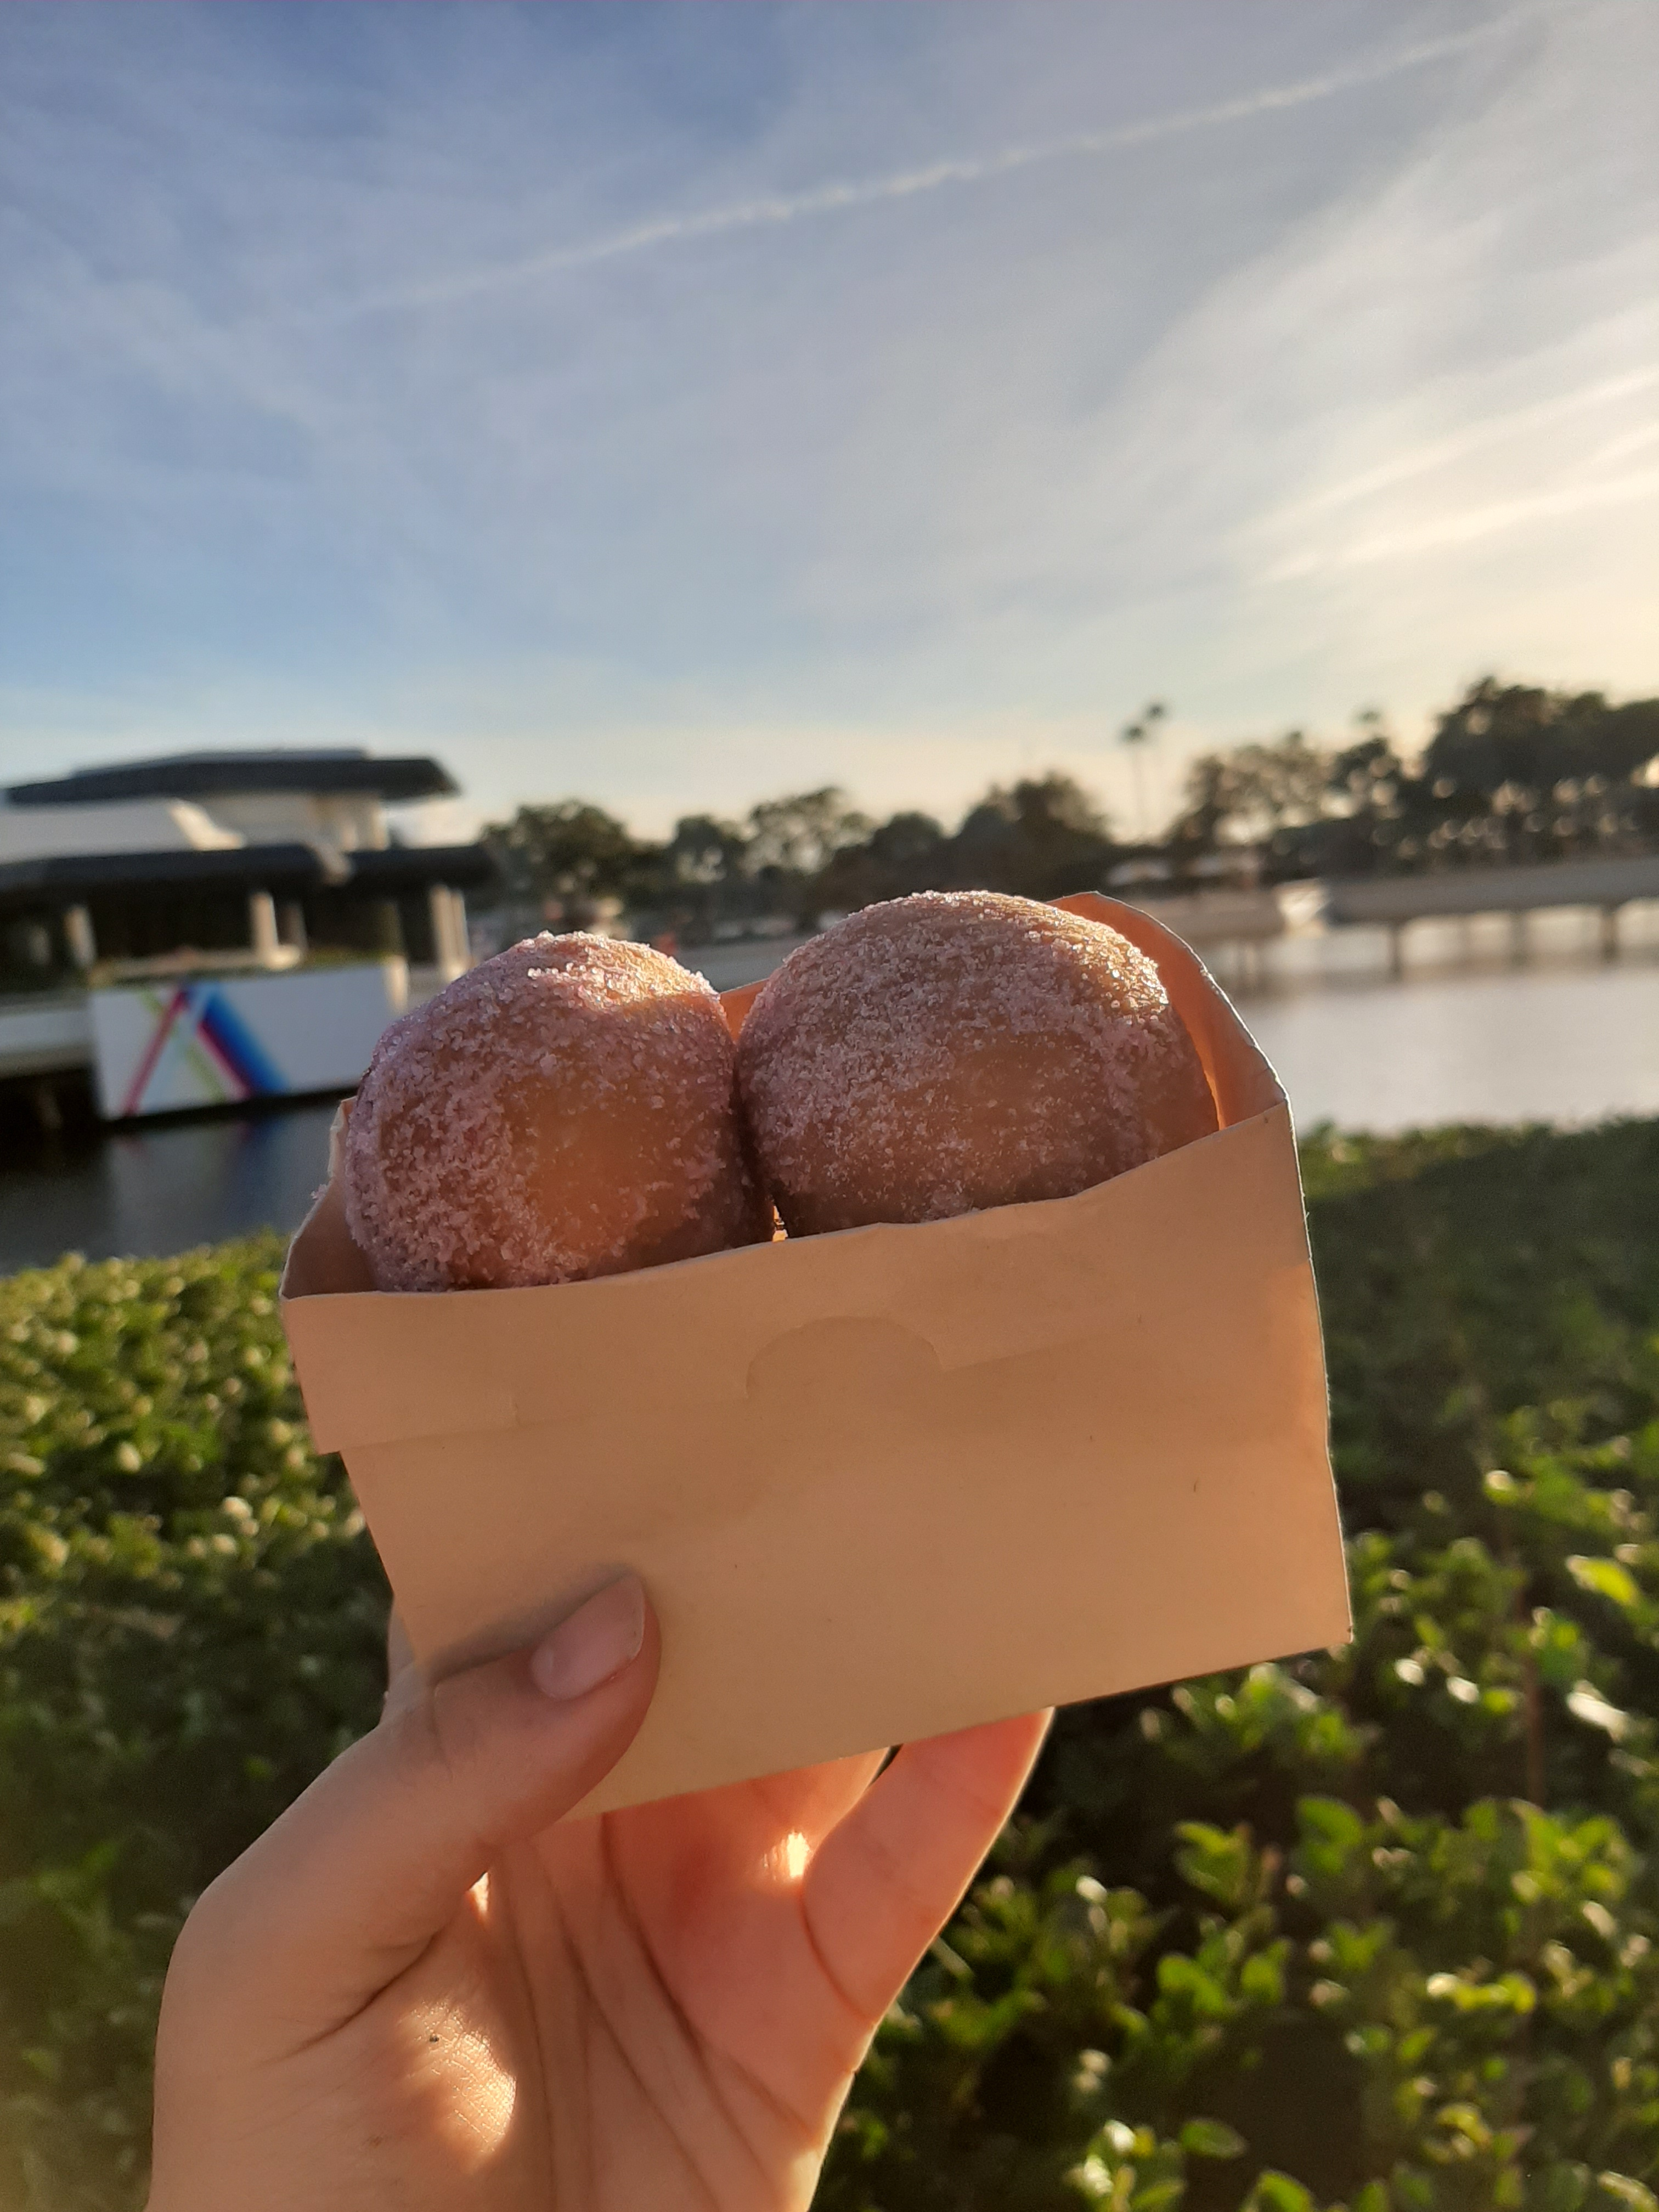 Rosie's hand holding a small box of Strawberry Dusted Yeast Donut Holes against a blue sky